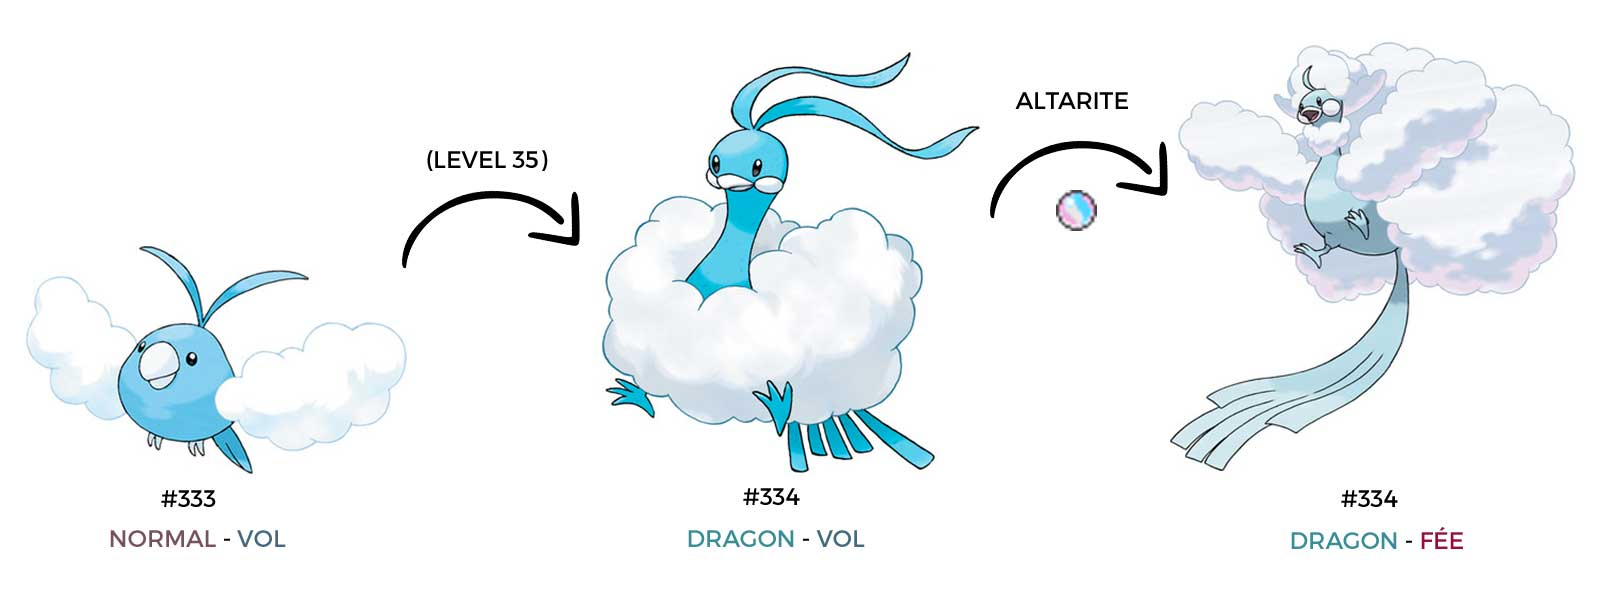 Méga-Altaria type dragon